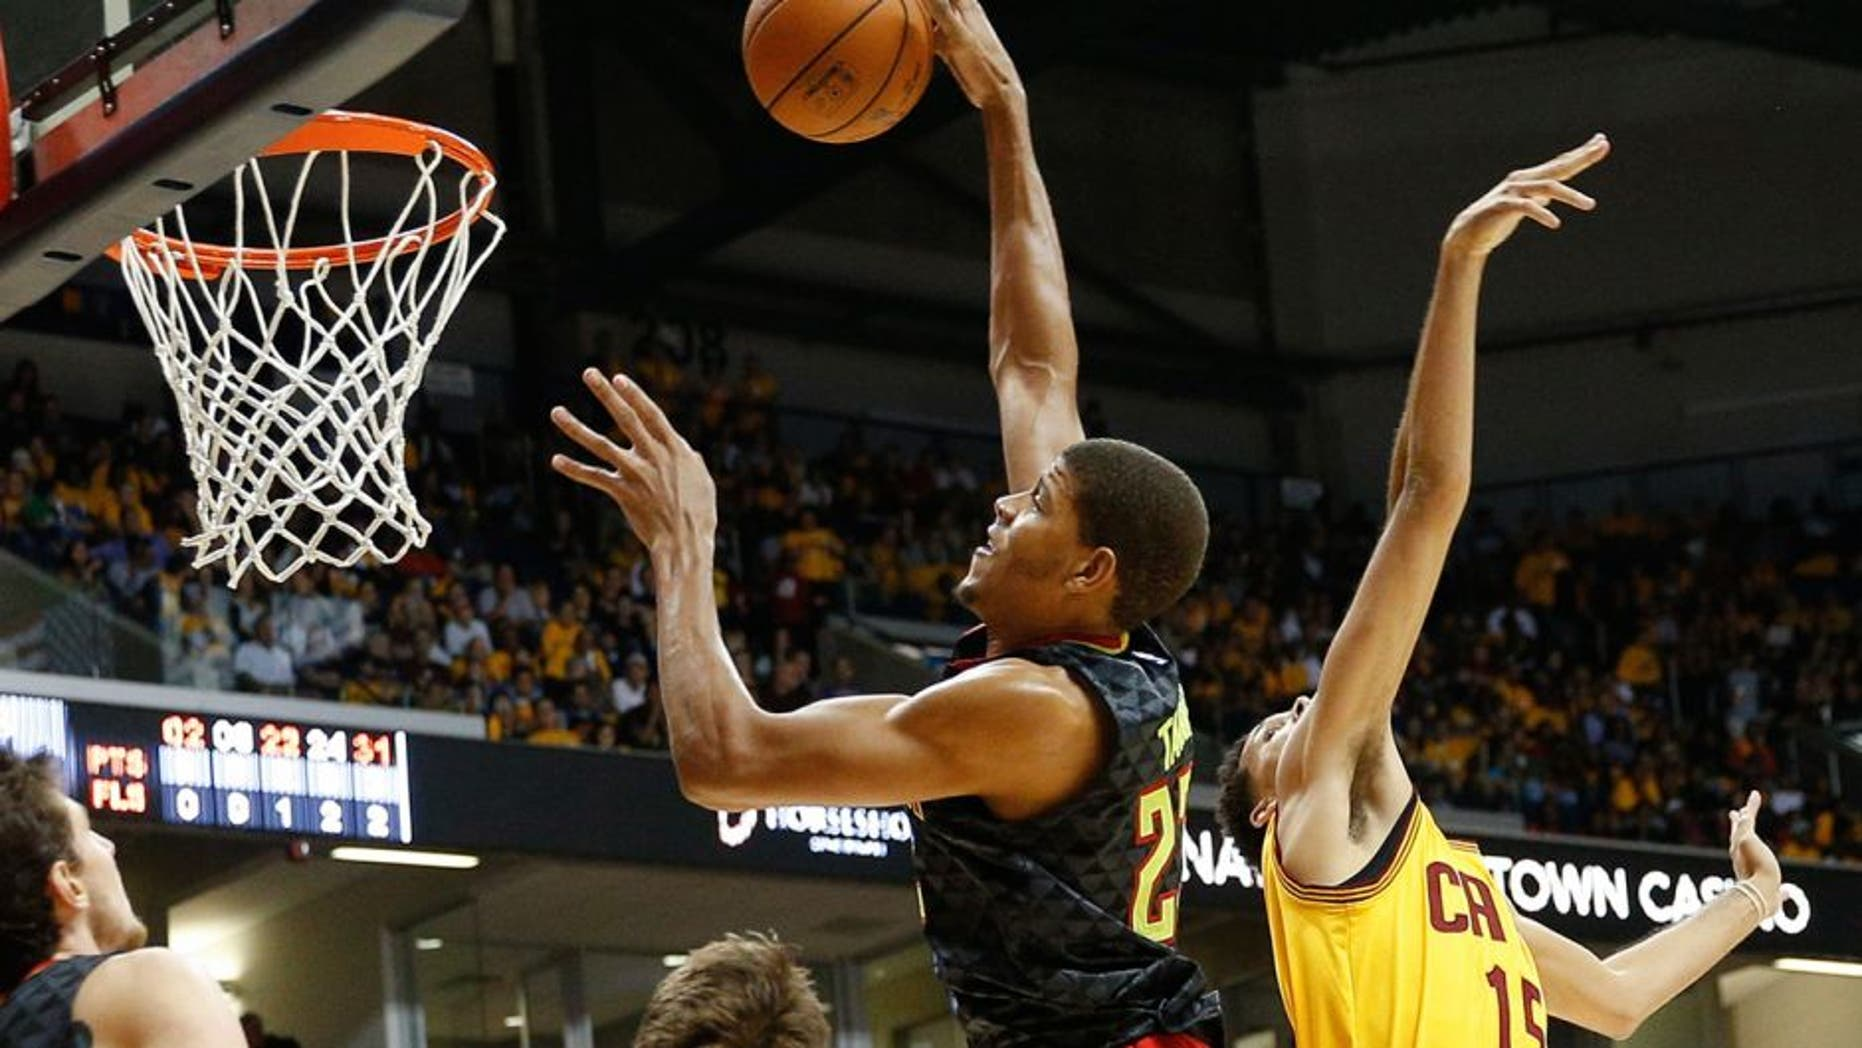 Atlanta Hawks center Walter Tavares (22) shoots over Cleveland Cavaliers forward Austin Daye (15) in the second half of an NBA preseason basketball game, Wednesday, Oct. 7, 2015, in Cincinnati. The Hawks won 98-96. (AP Photo/John Minchillo)